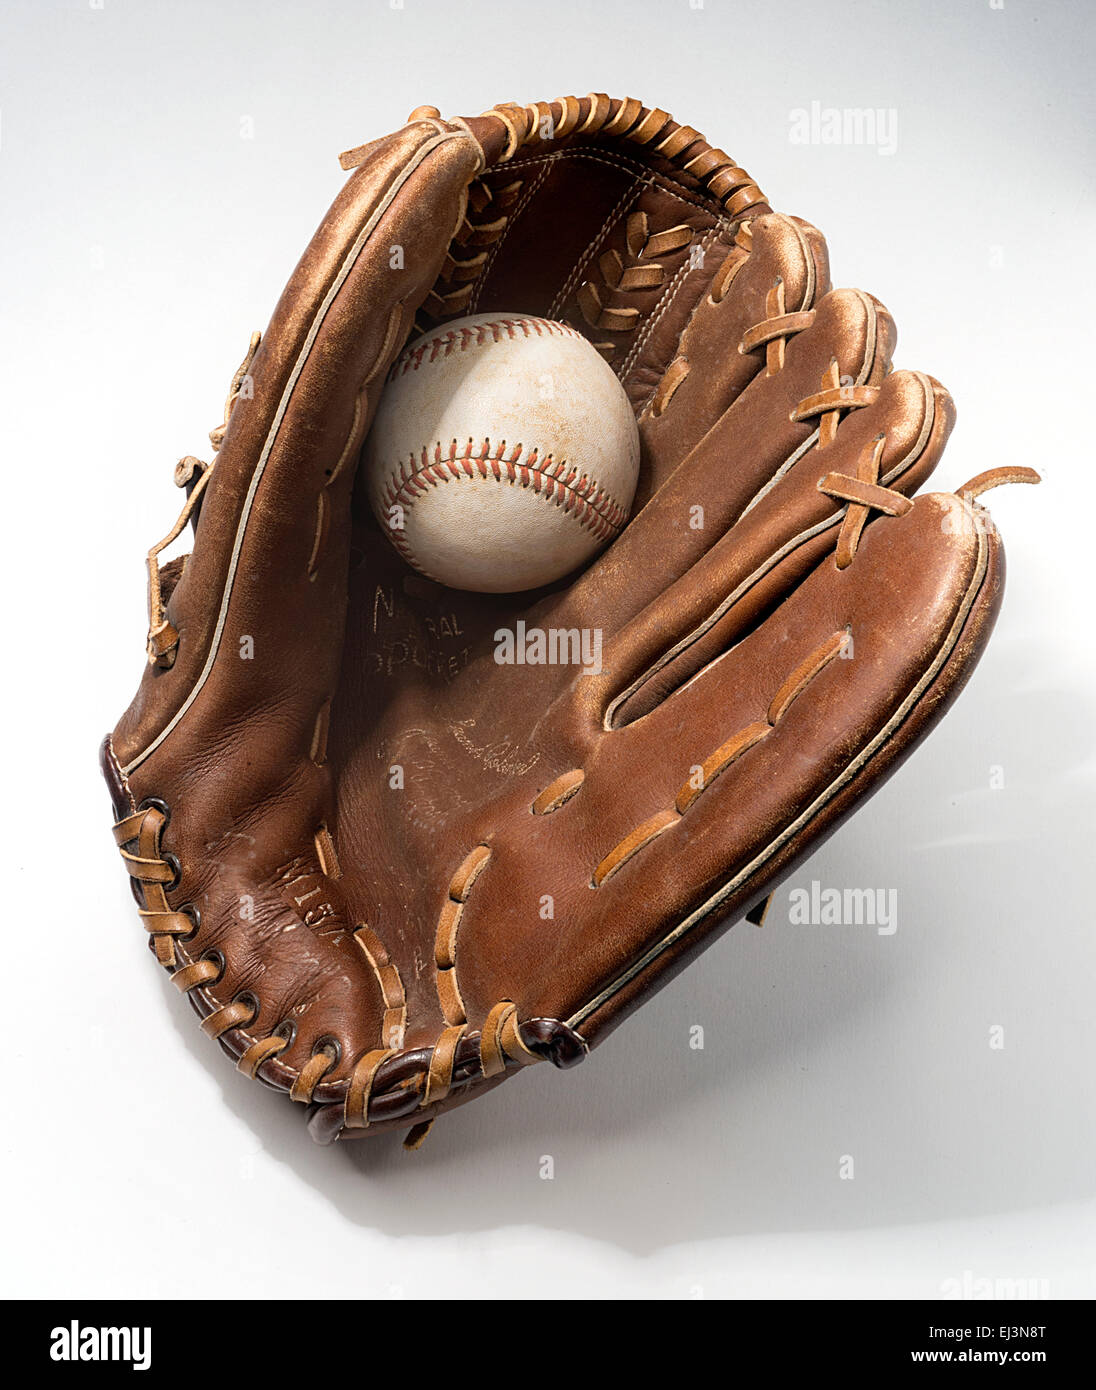 gant de baseball Photo Stock